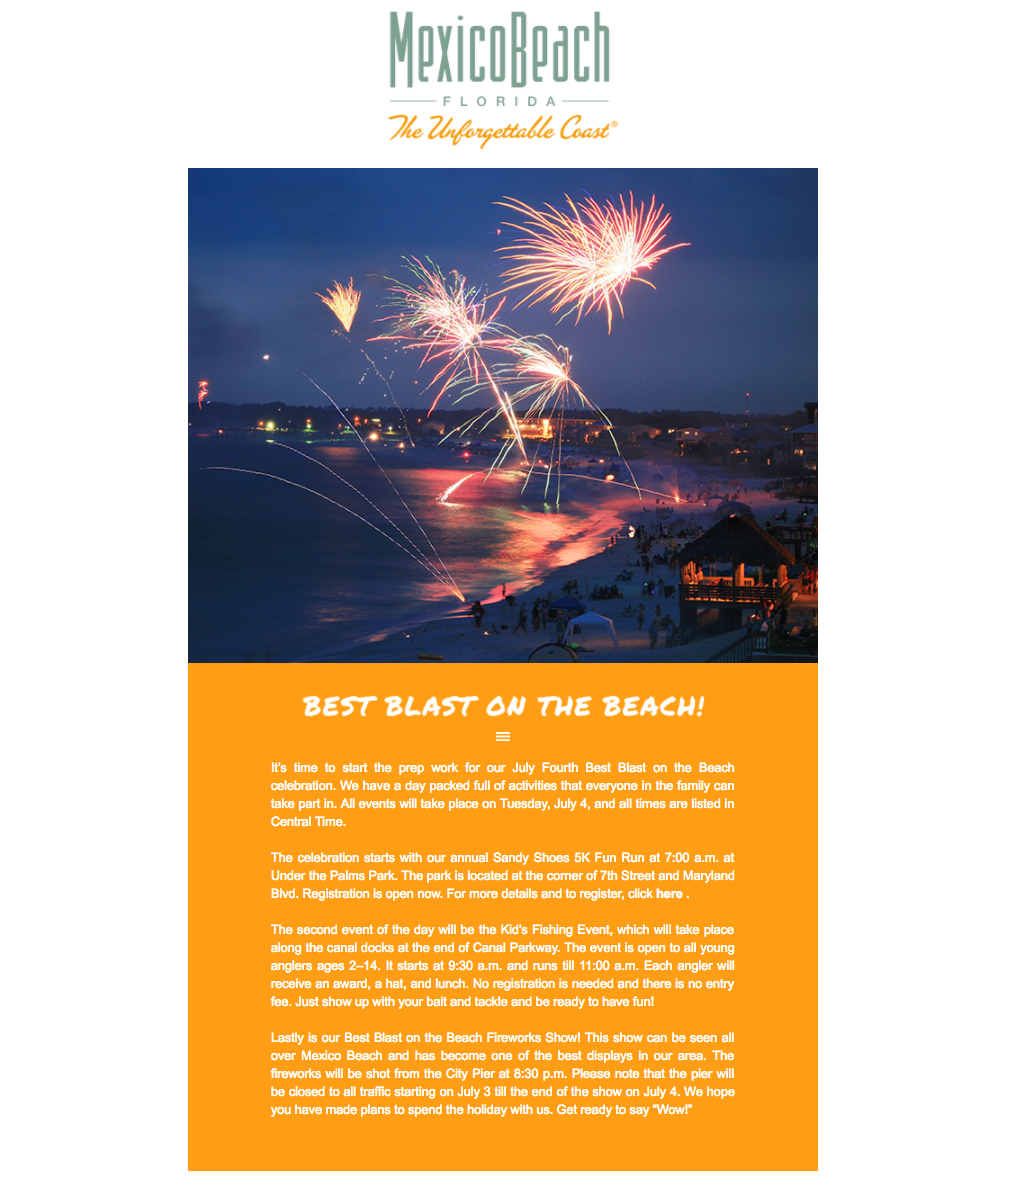 Mexico Beach, Florida - June 2017 Newsletter Feature